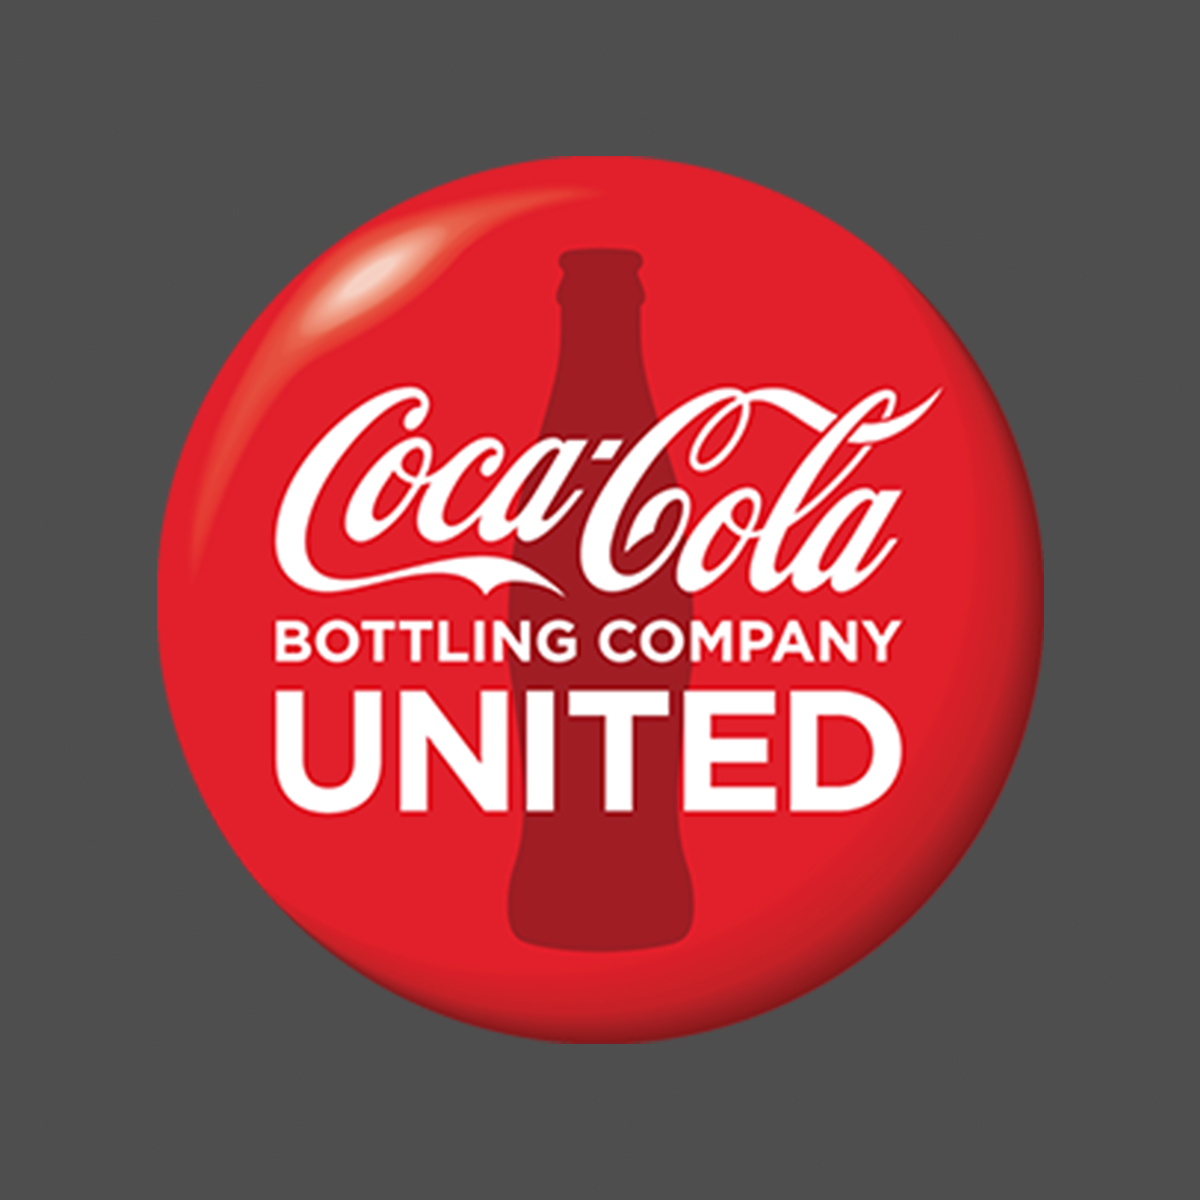 cocacola_color.png